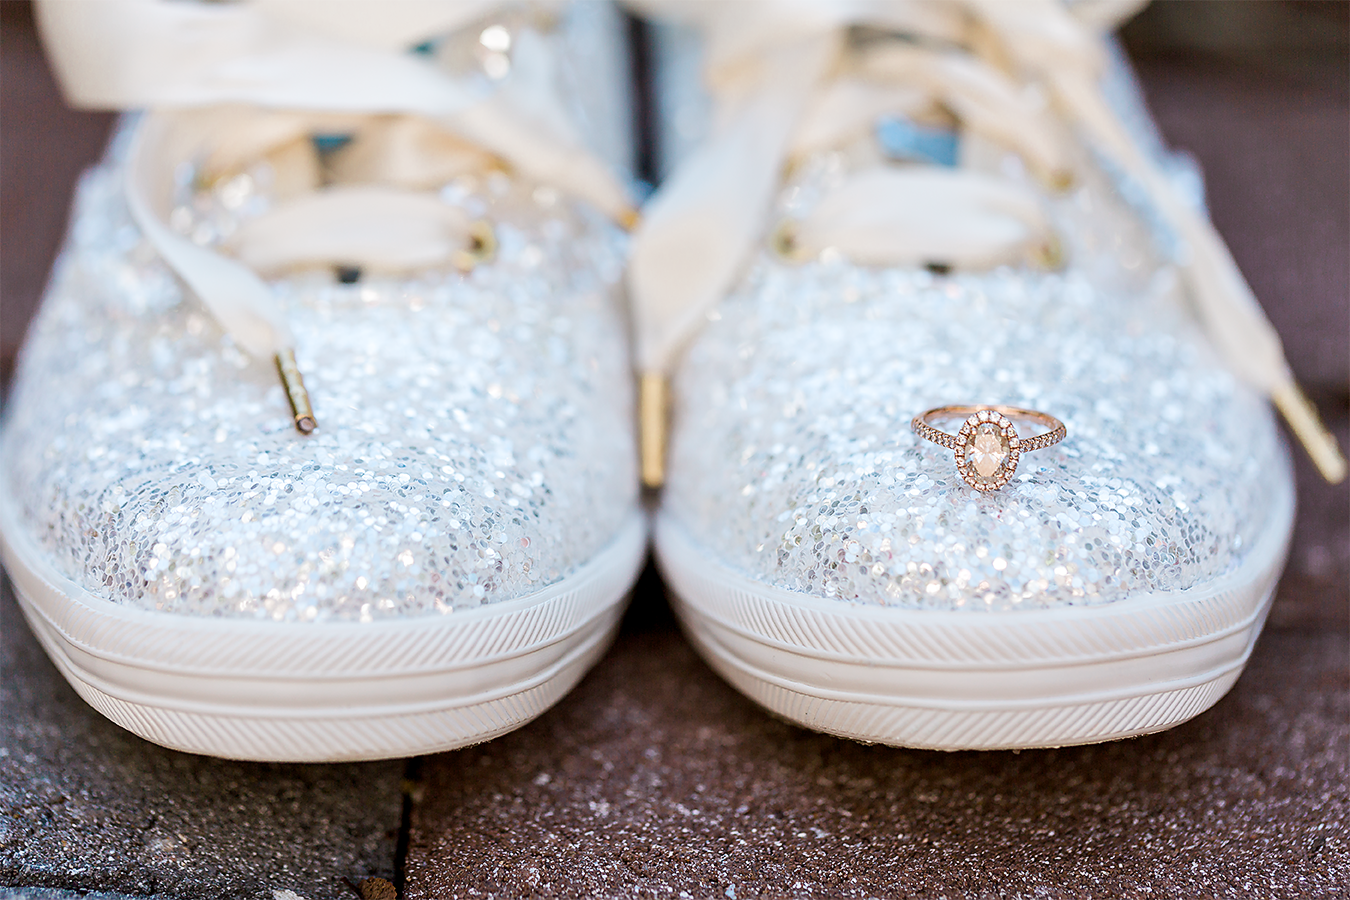 kate spade shoes and bride's ring_wedding details.png